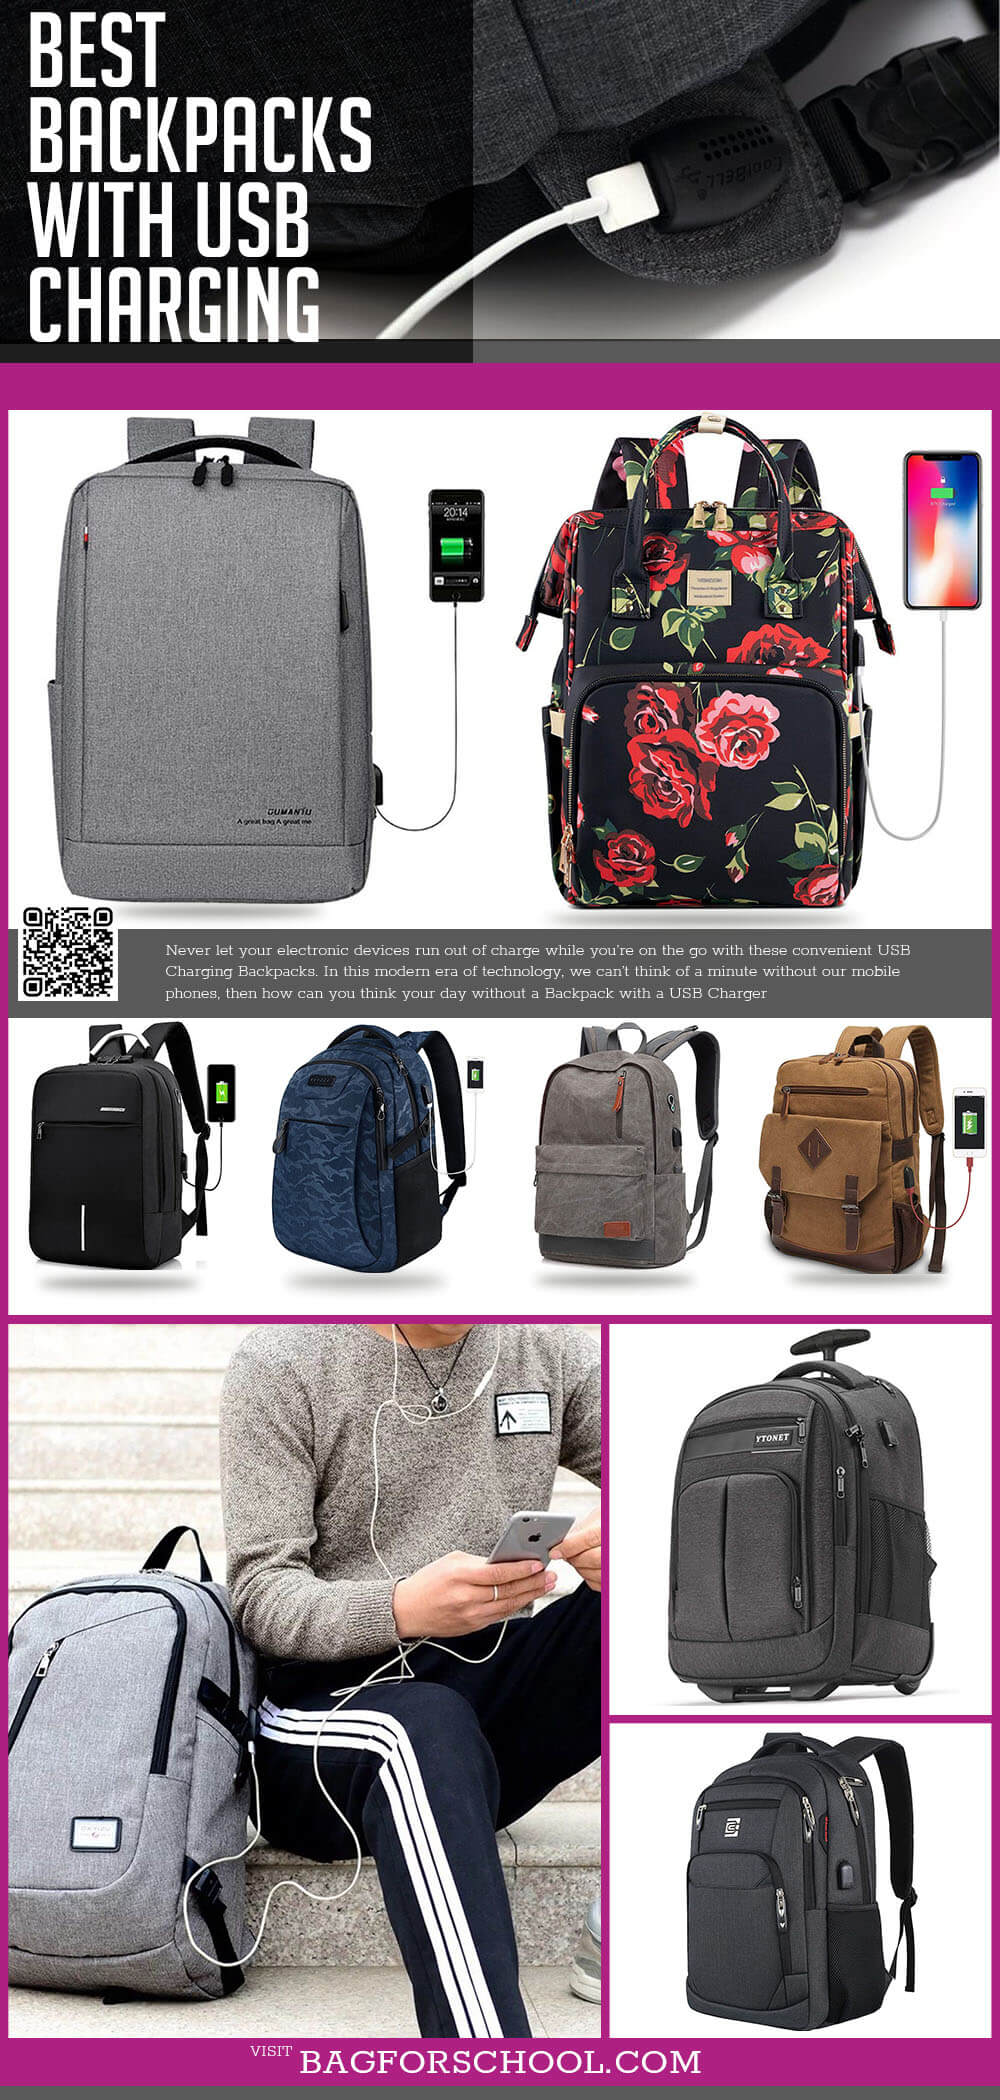 Backpacks With USB Charging